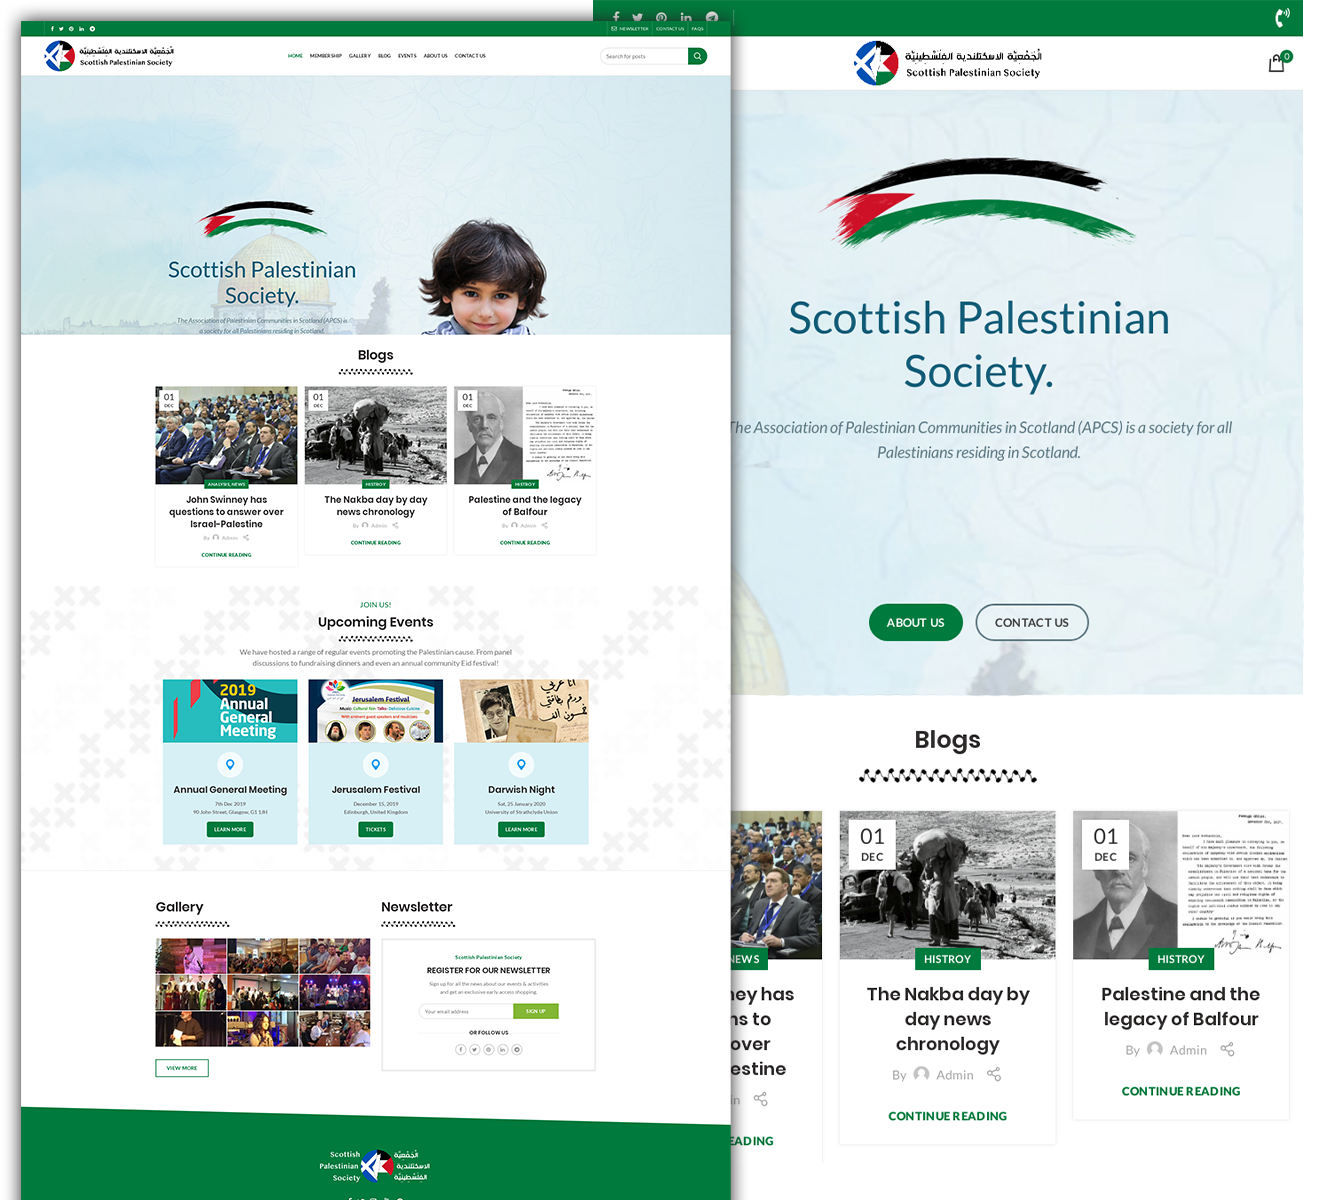 scotpal-society.org Concept Large